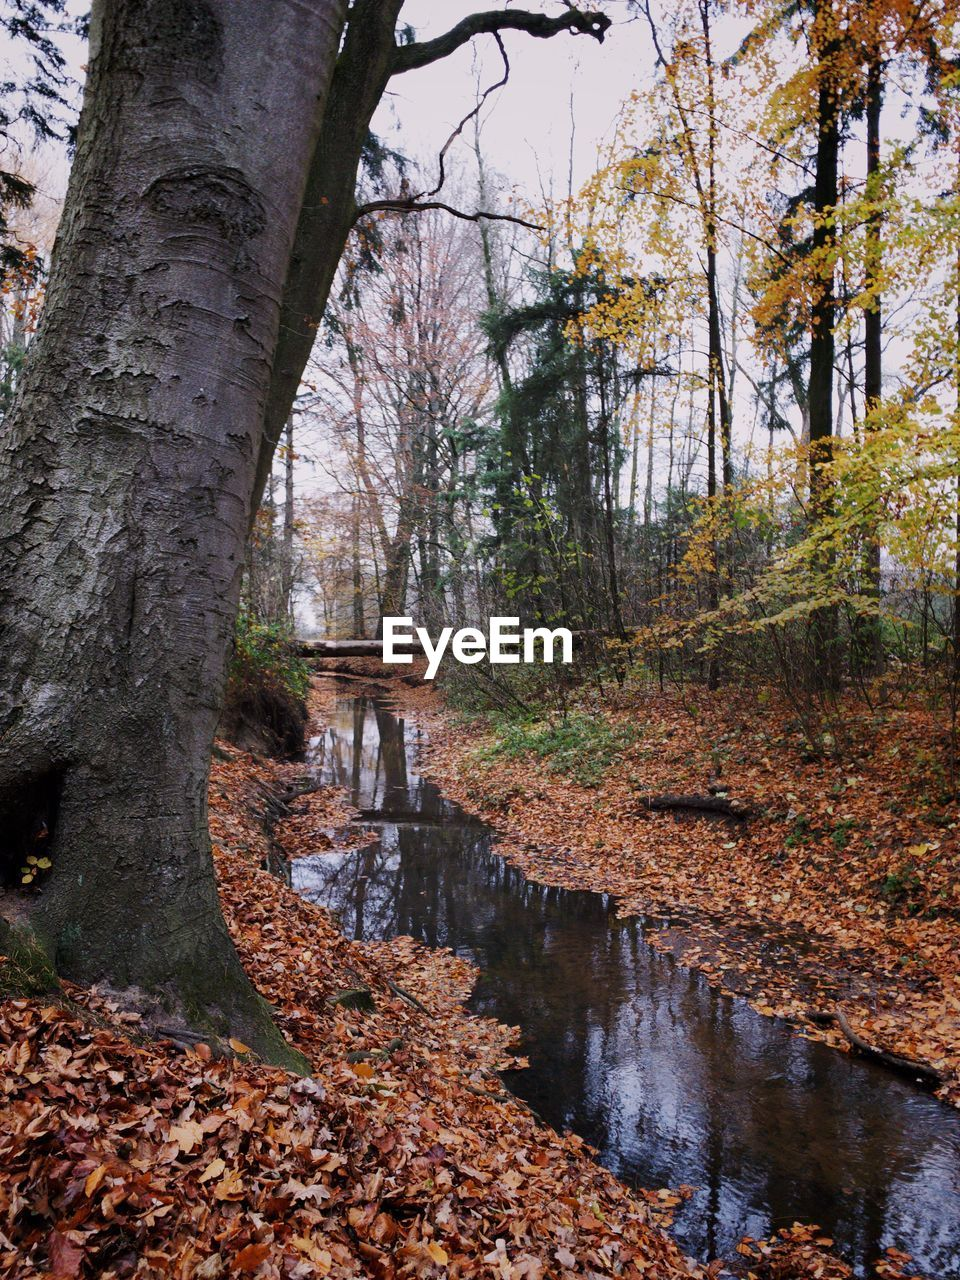 tree, autumn, water, change, plant, nature, reflection, no people, day, trunk, forest, tree trunk, tranquility, leaf, plant part, land, scenics - nature, beauty in nature, outdoors, stream - flowing water, woodland, fall, canal, flowing, leaves